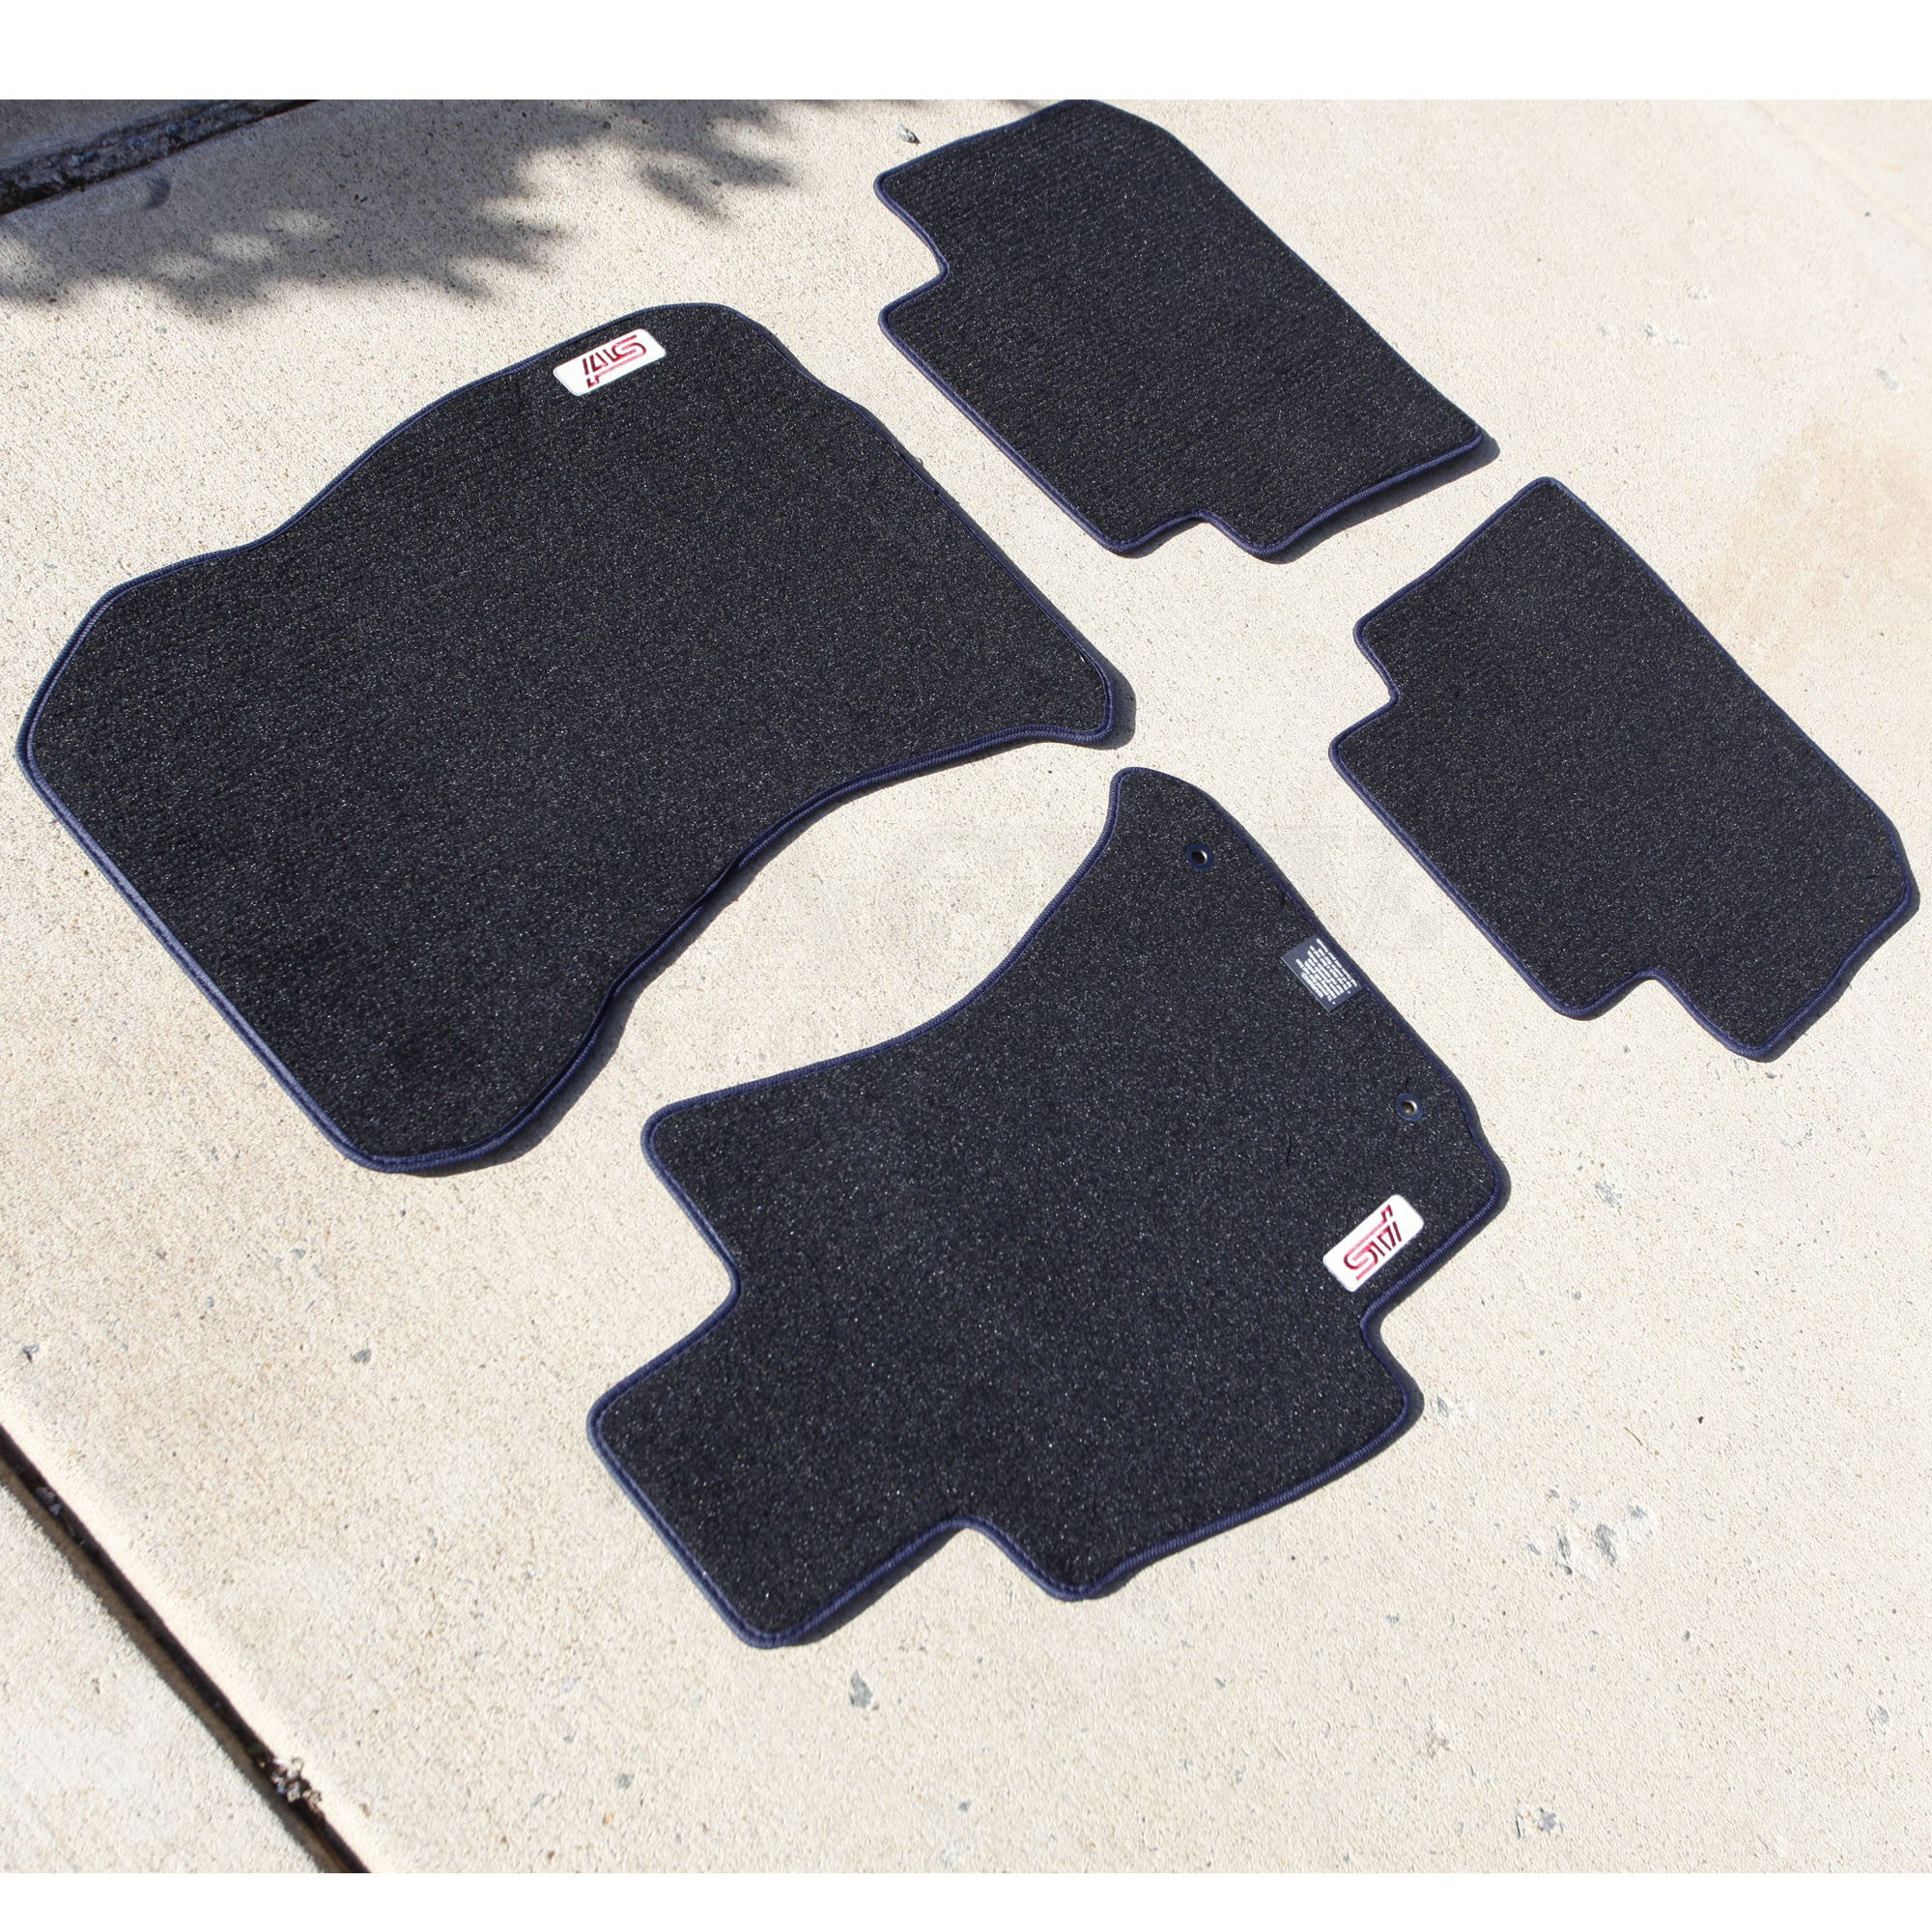 set com volkswagen mats of dp cc amazon new mat passat vw monster automotive genuine oem